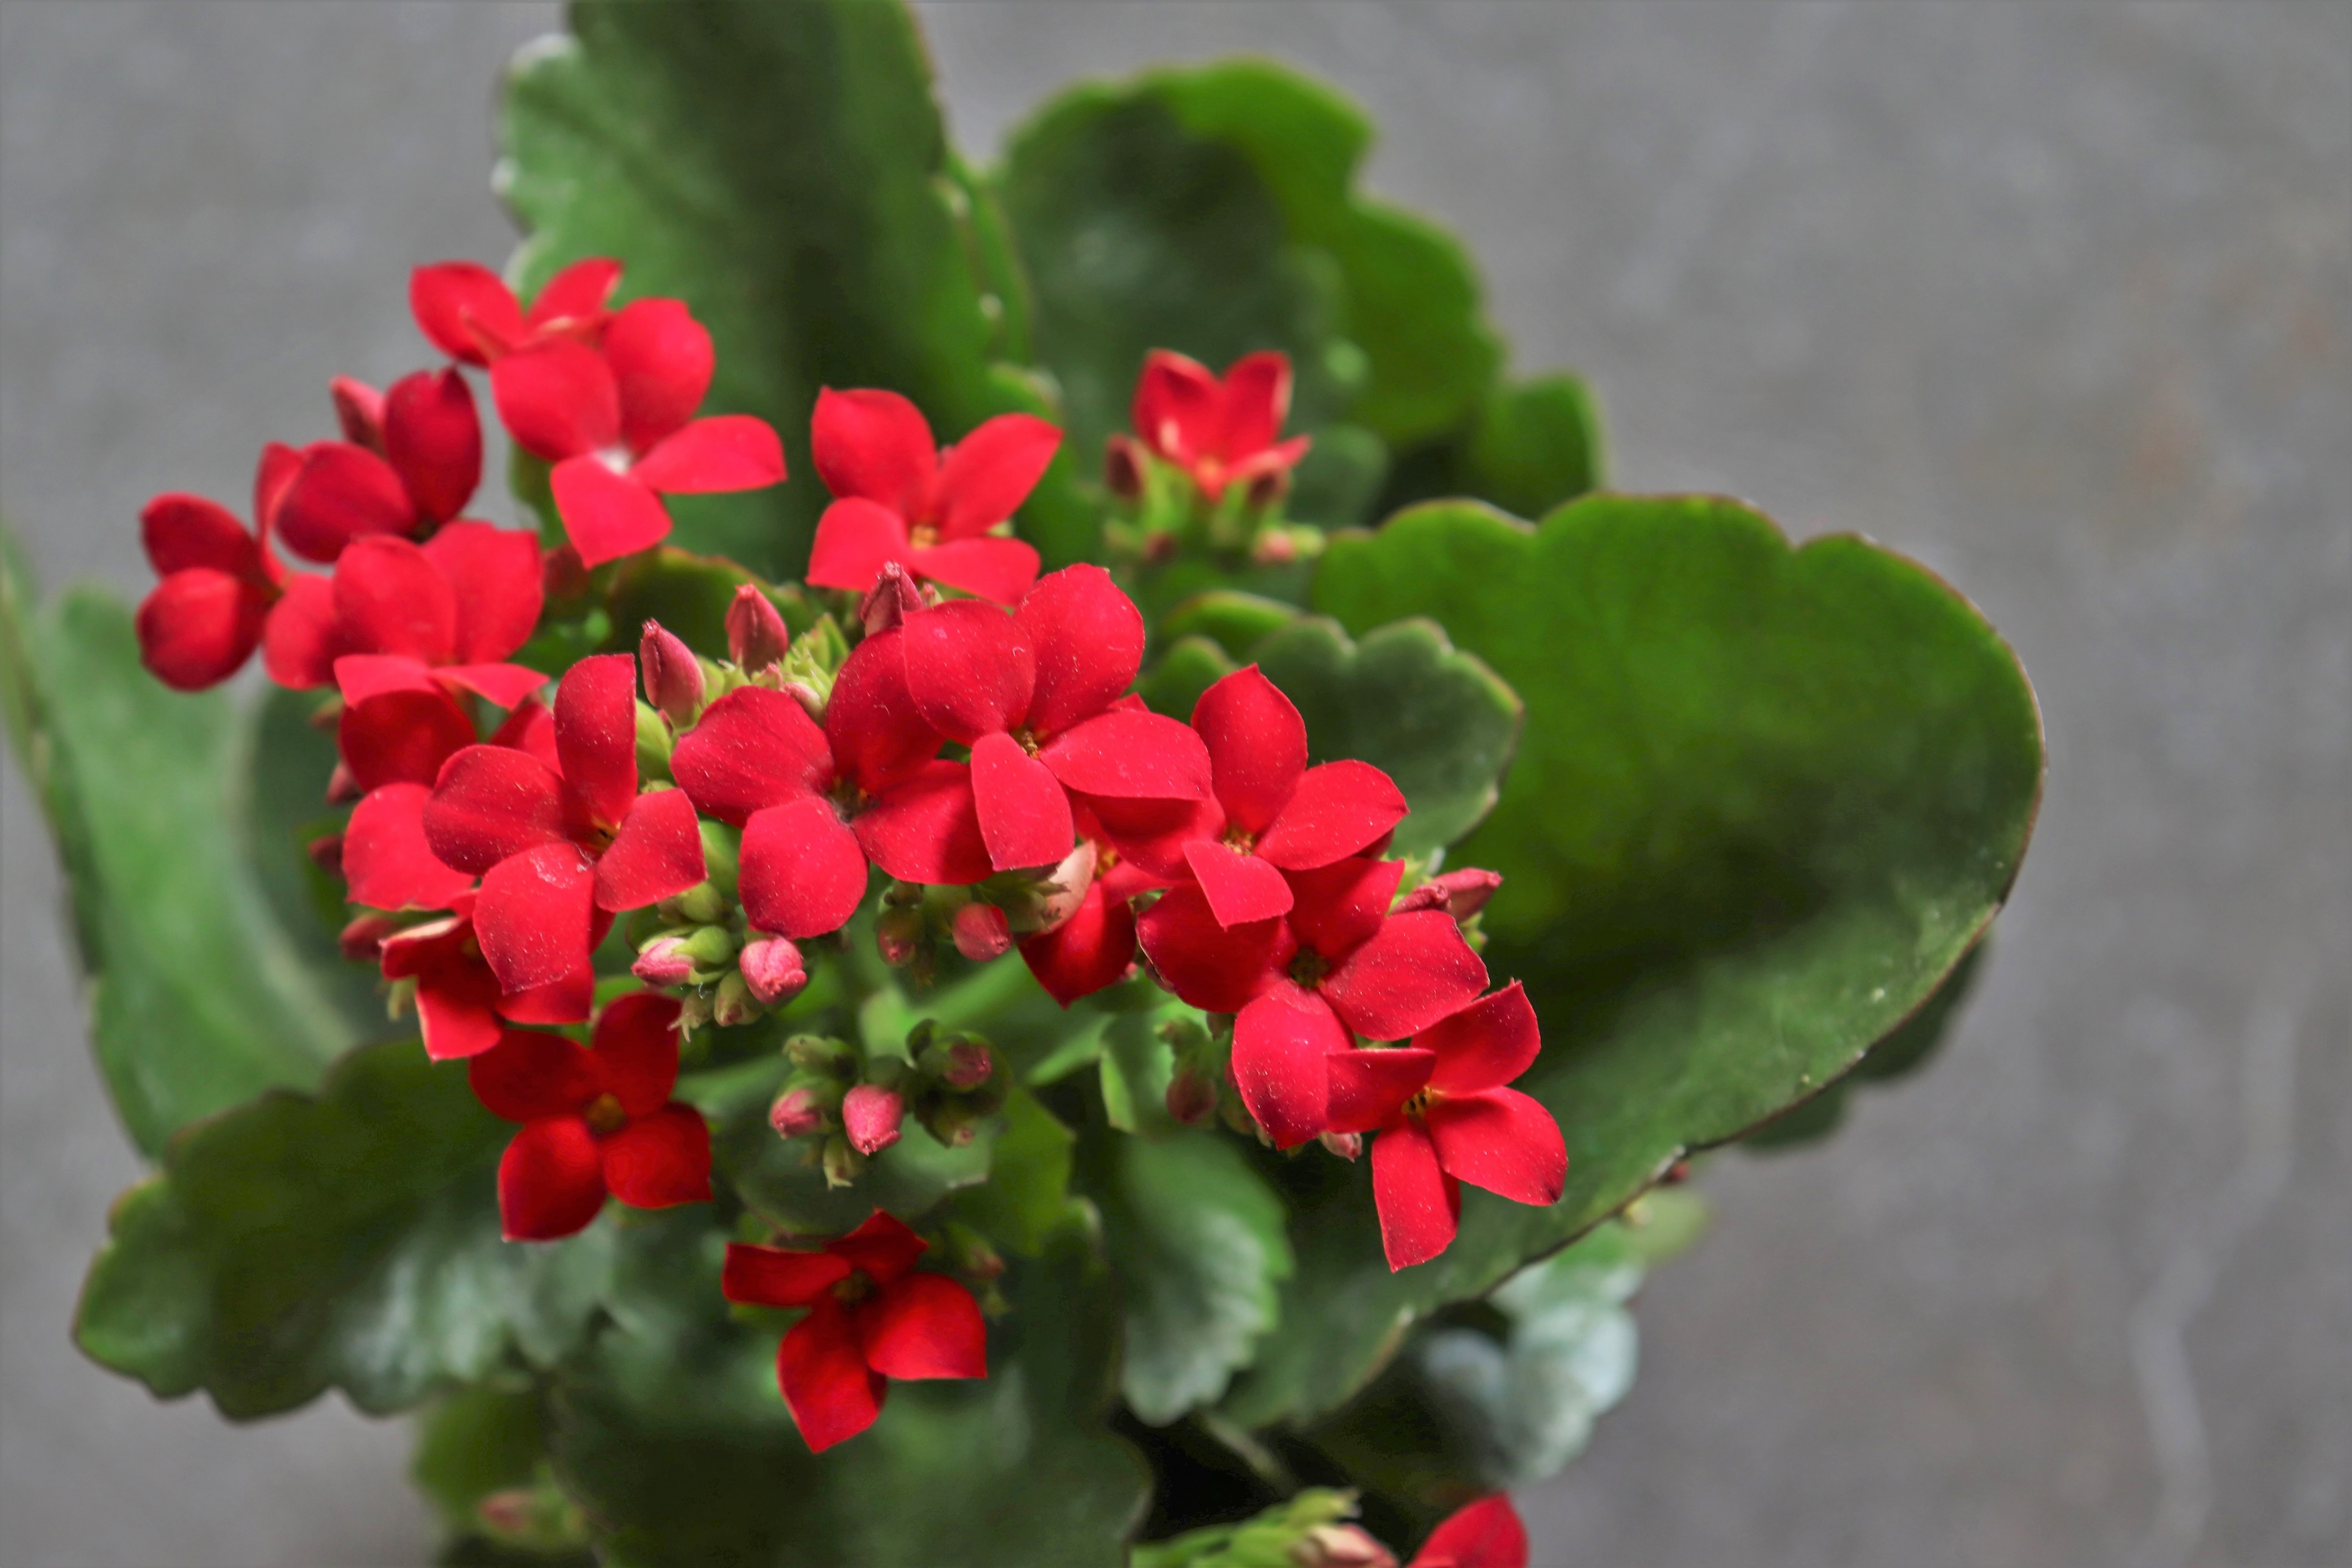 How to Prune Kalanchoes   Home Guides   SF Gate Home Depot Foliage Plants Html on home depot topiary plants, home depot outdoor plants, home depot nursery plants, home depot low light plants, home depot potted plants, home depot garden plants, home depot tropical plants, home depot trees plants, home depot shade plants, home depot bonsai plants, home depot ground cover plants, home depot flowers plants, home depot flowering plants, home depot water plants, home depot pots for plants, home depot indoor plants, home depot bamboo plants, home depot perennial plants, home depot bedding plants, home depot landscape plants,